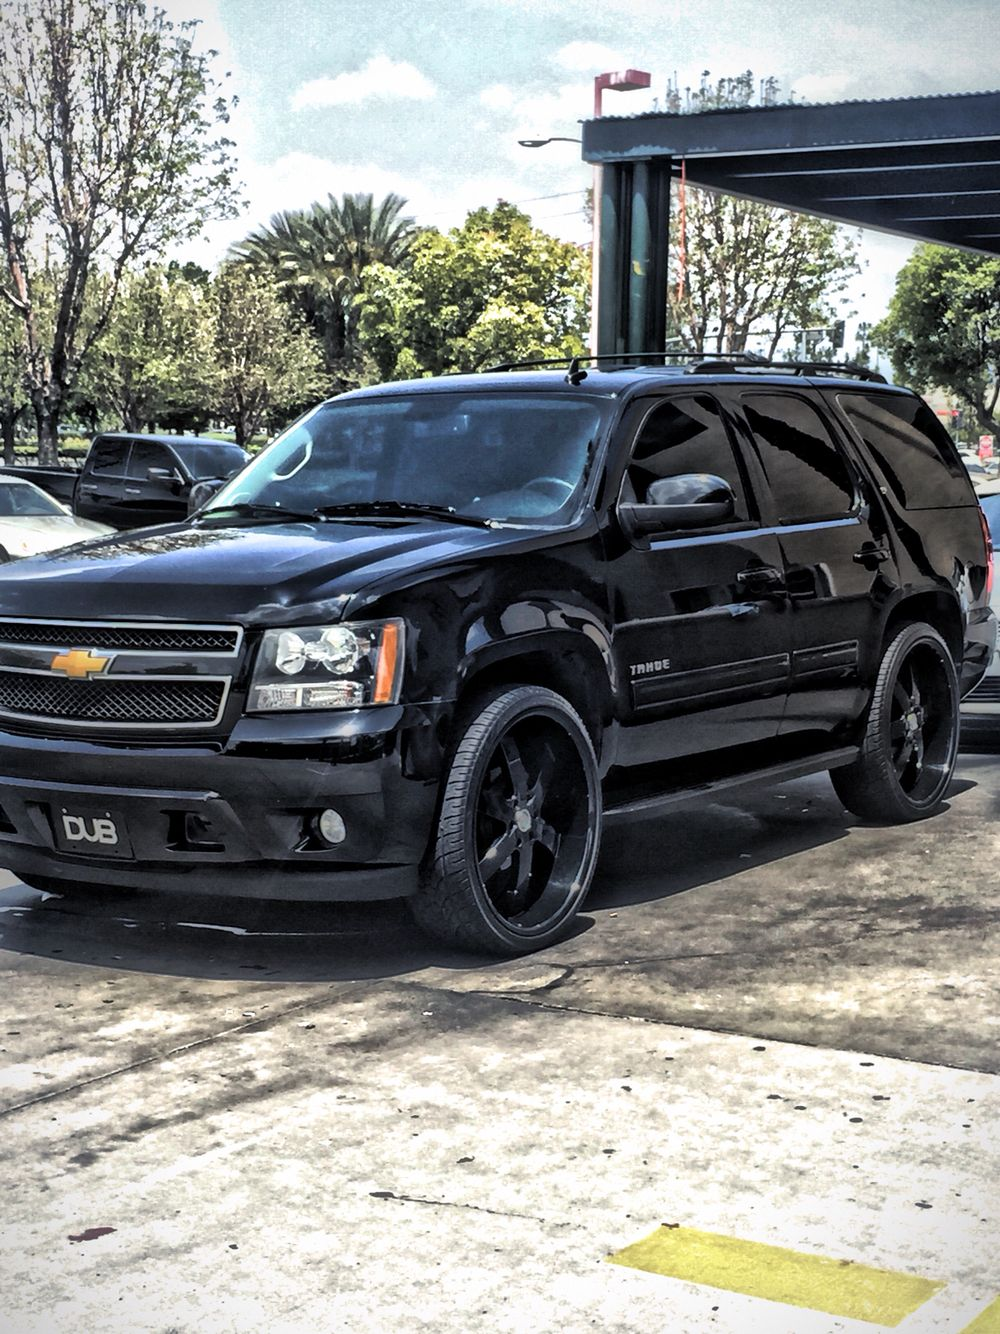 2014 Chevy Tahoe On 26 Rims Chevy Tahoe 2014 Chevy Tahoe